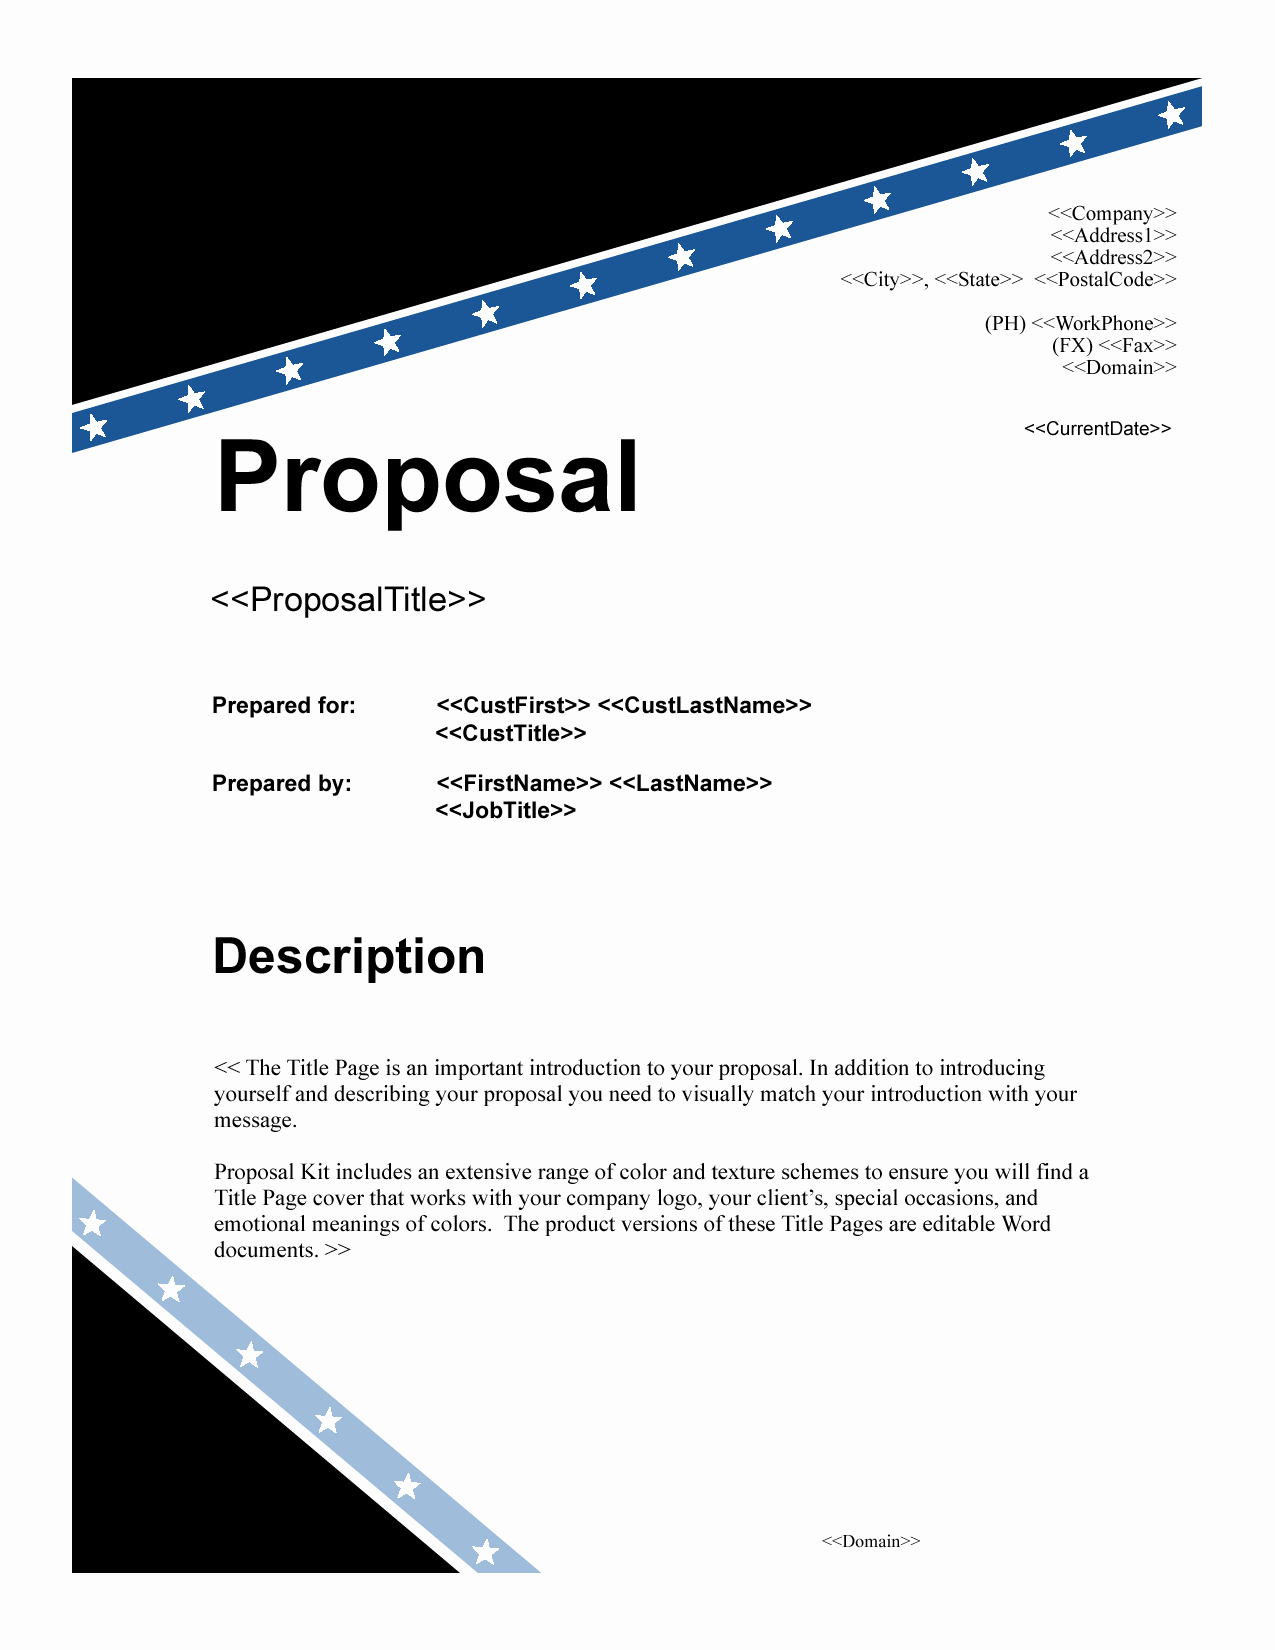 Business Proposal Cover Page Template Inspirational Best S Of Sample Proposal Cover Page Business